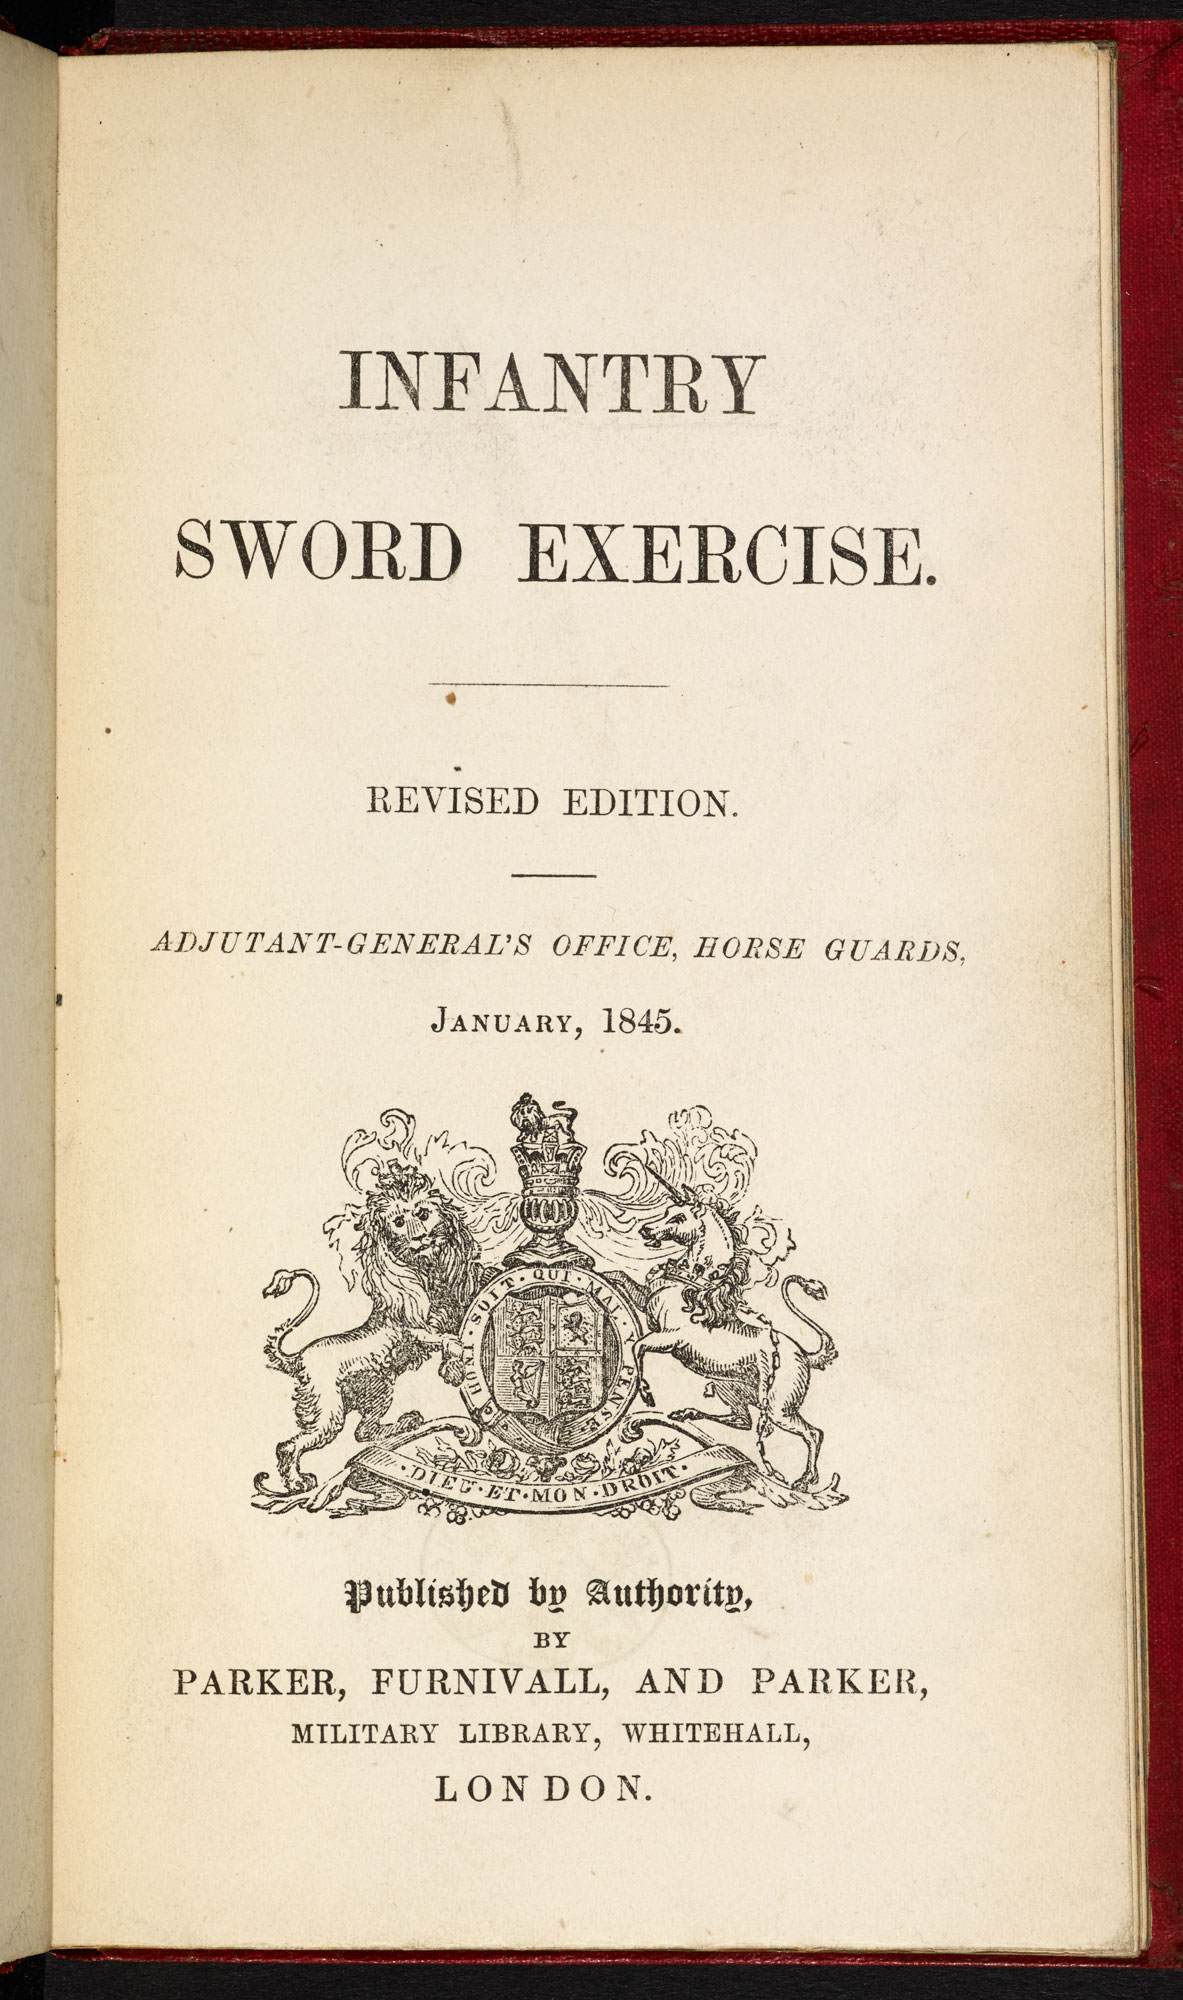 Sword Exercises [page: frontispiece and title page]